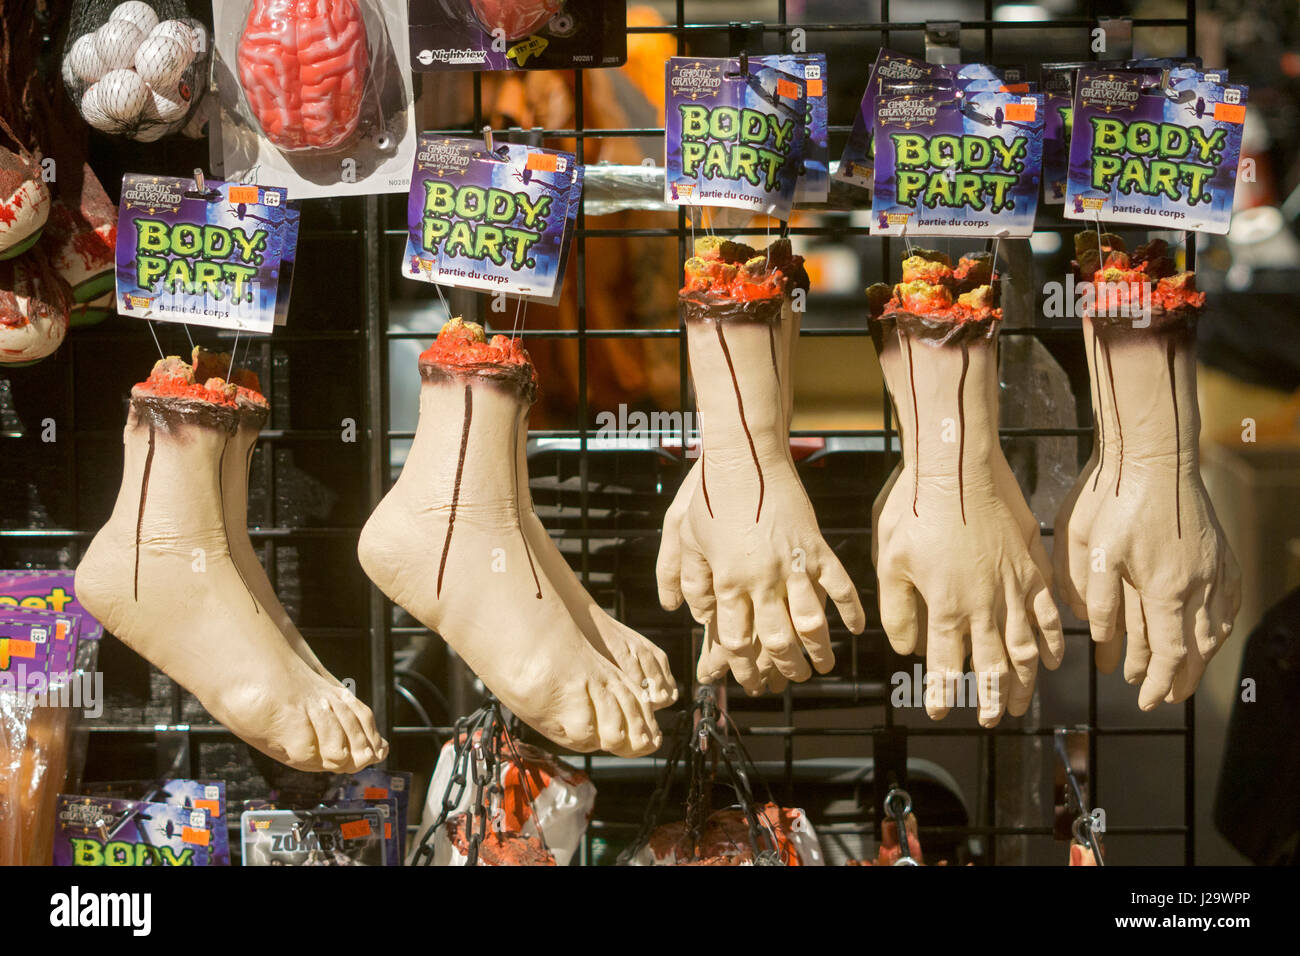 Hand and foot body parts for sale at the Halloween Adventure in Greenwich Village, Manhattan, New York City - Stock Image